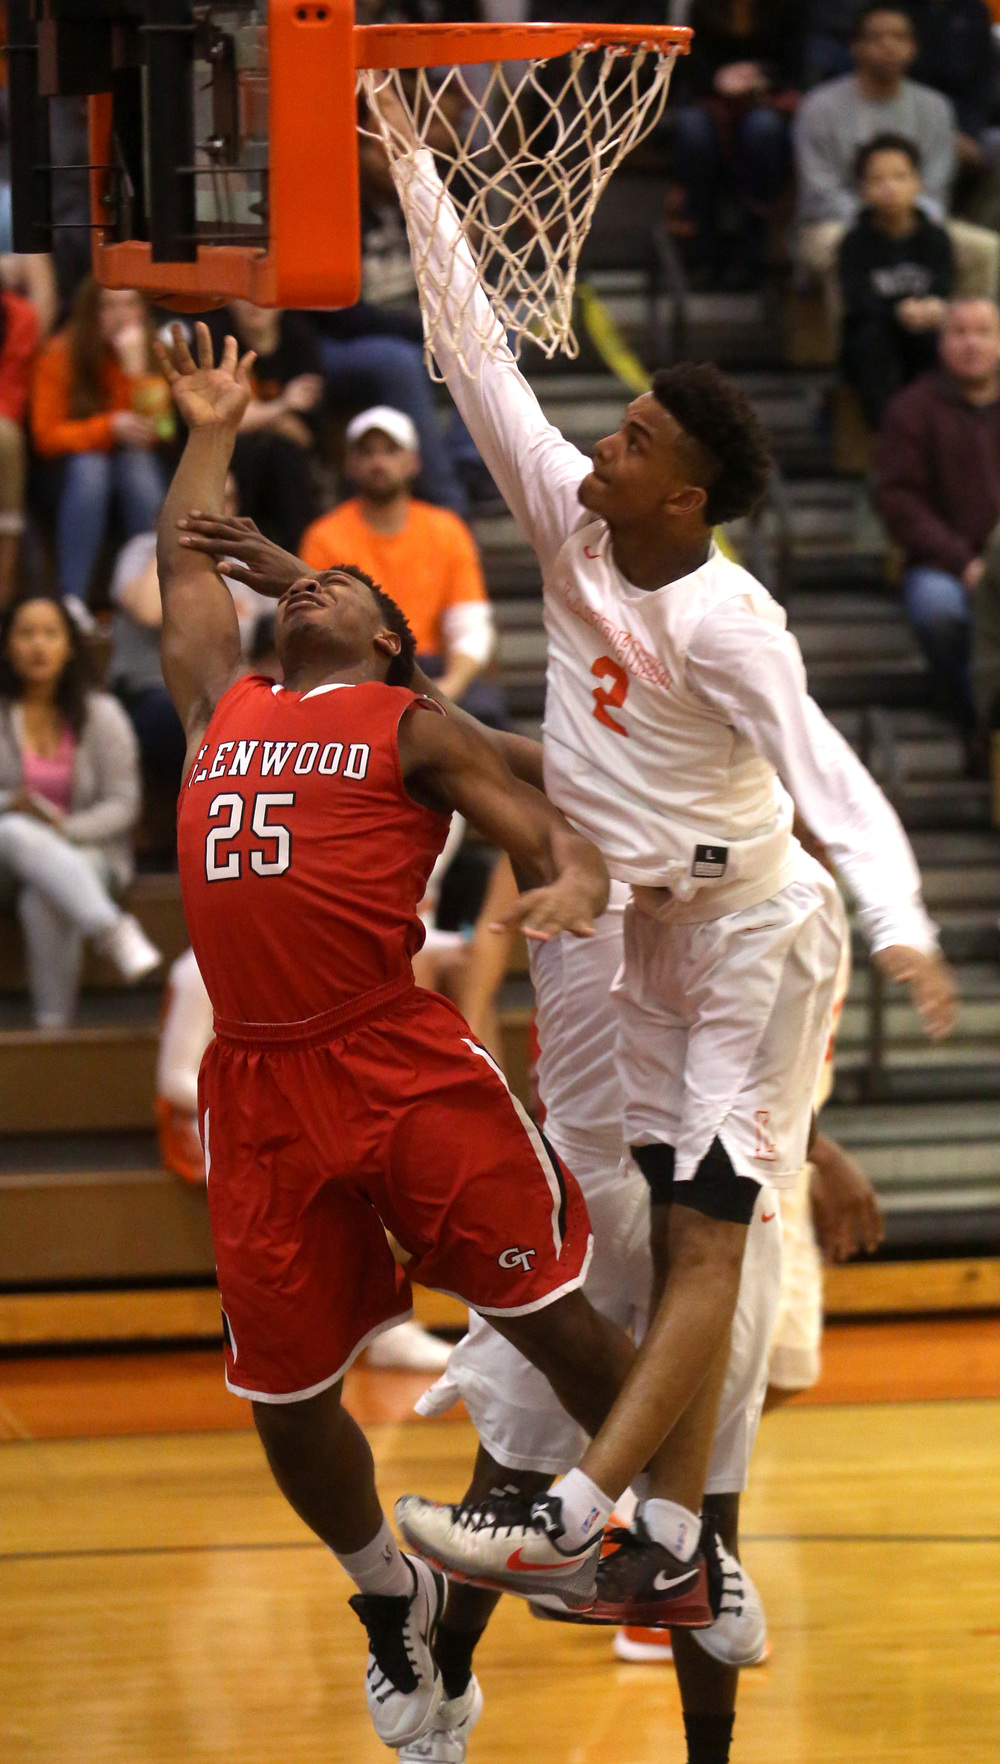 Glenwood's Clark Gaden has his shot blocked by defending Lanphier player Cardell McGee. David Spencer/The State Journal Register